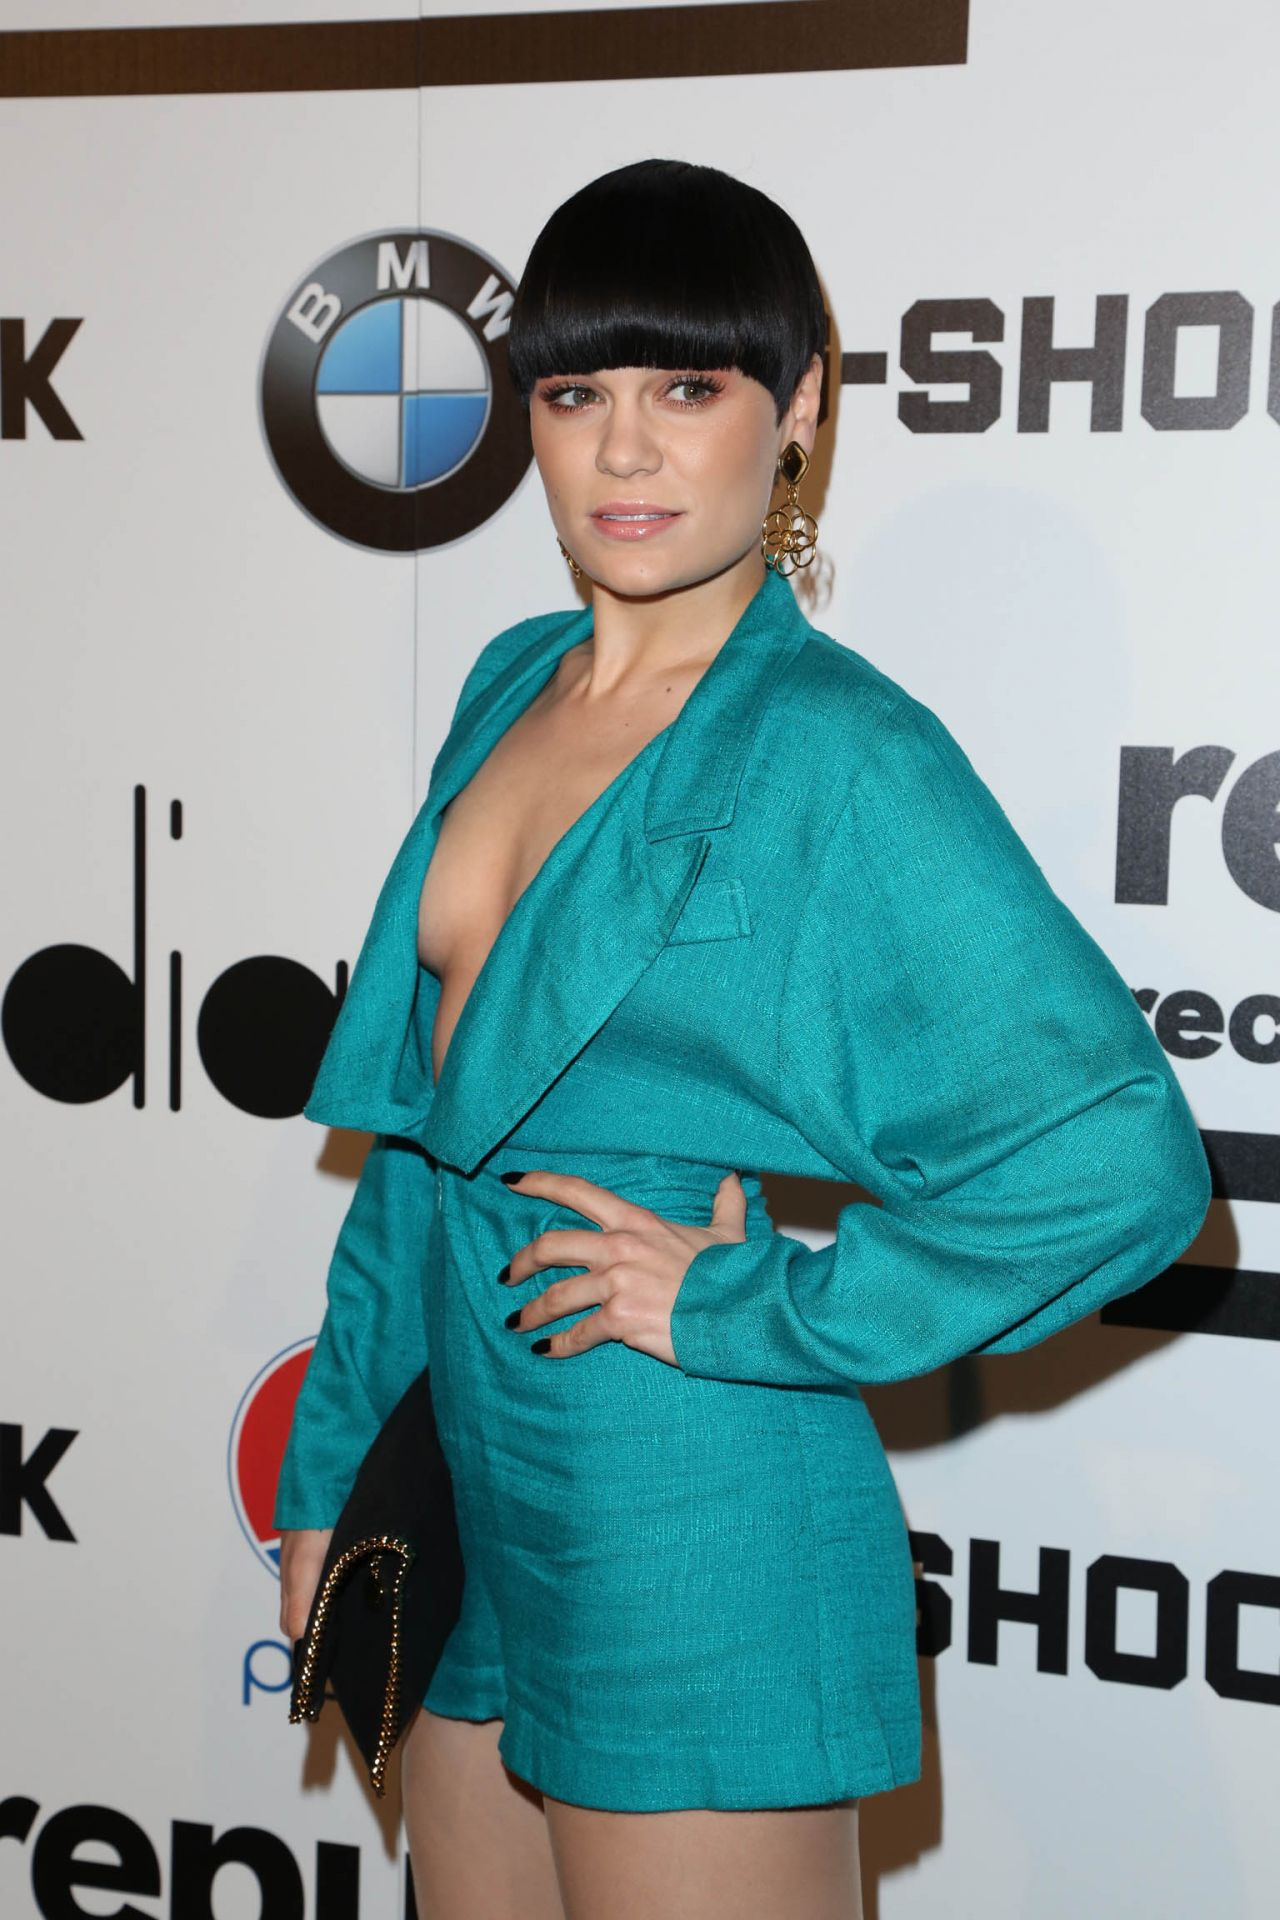 Jessie J At Republic Records Grammy Party In Los Angeles, January 2014